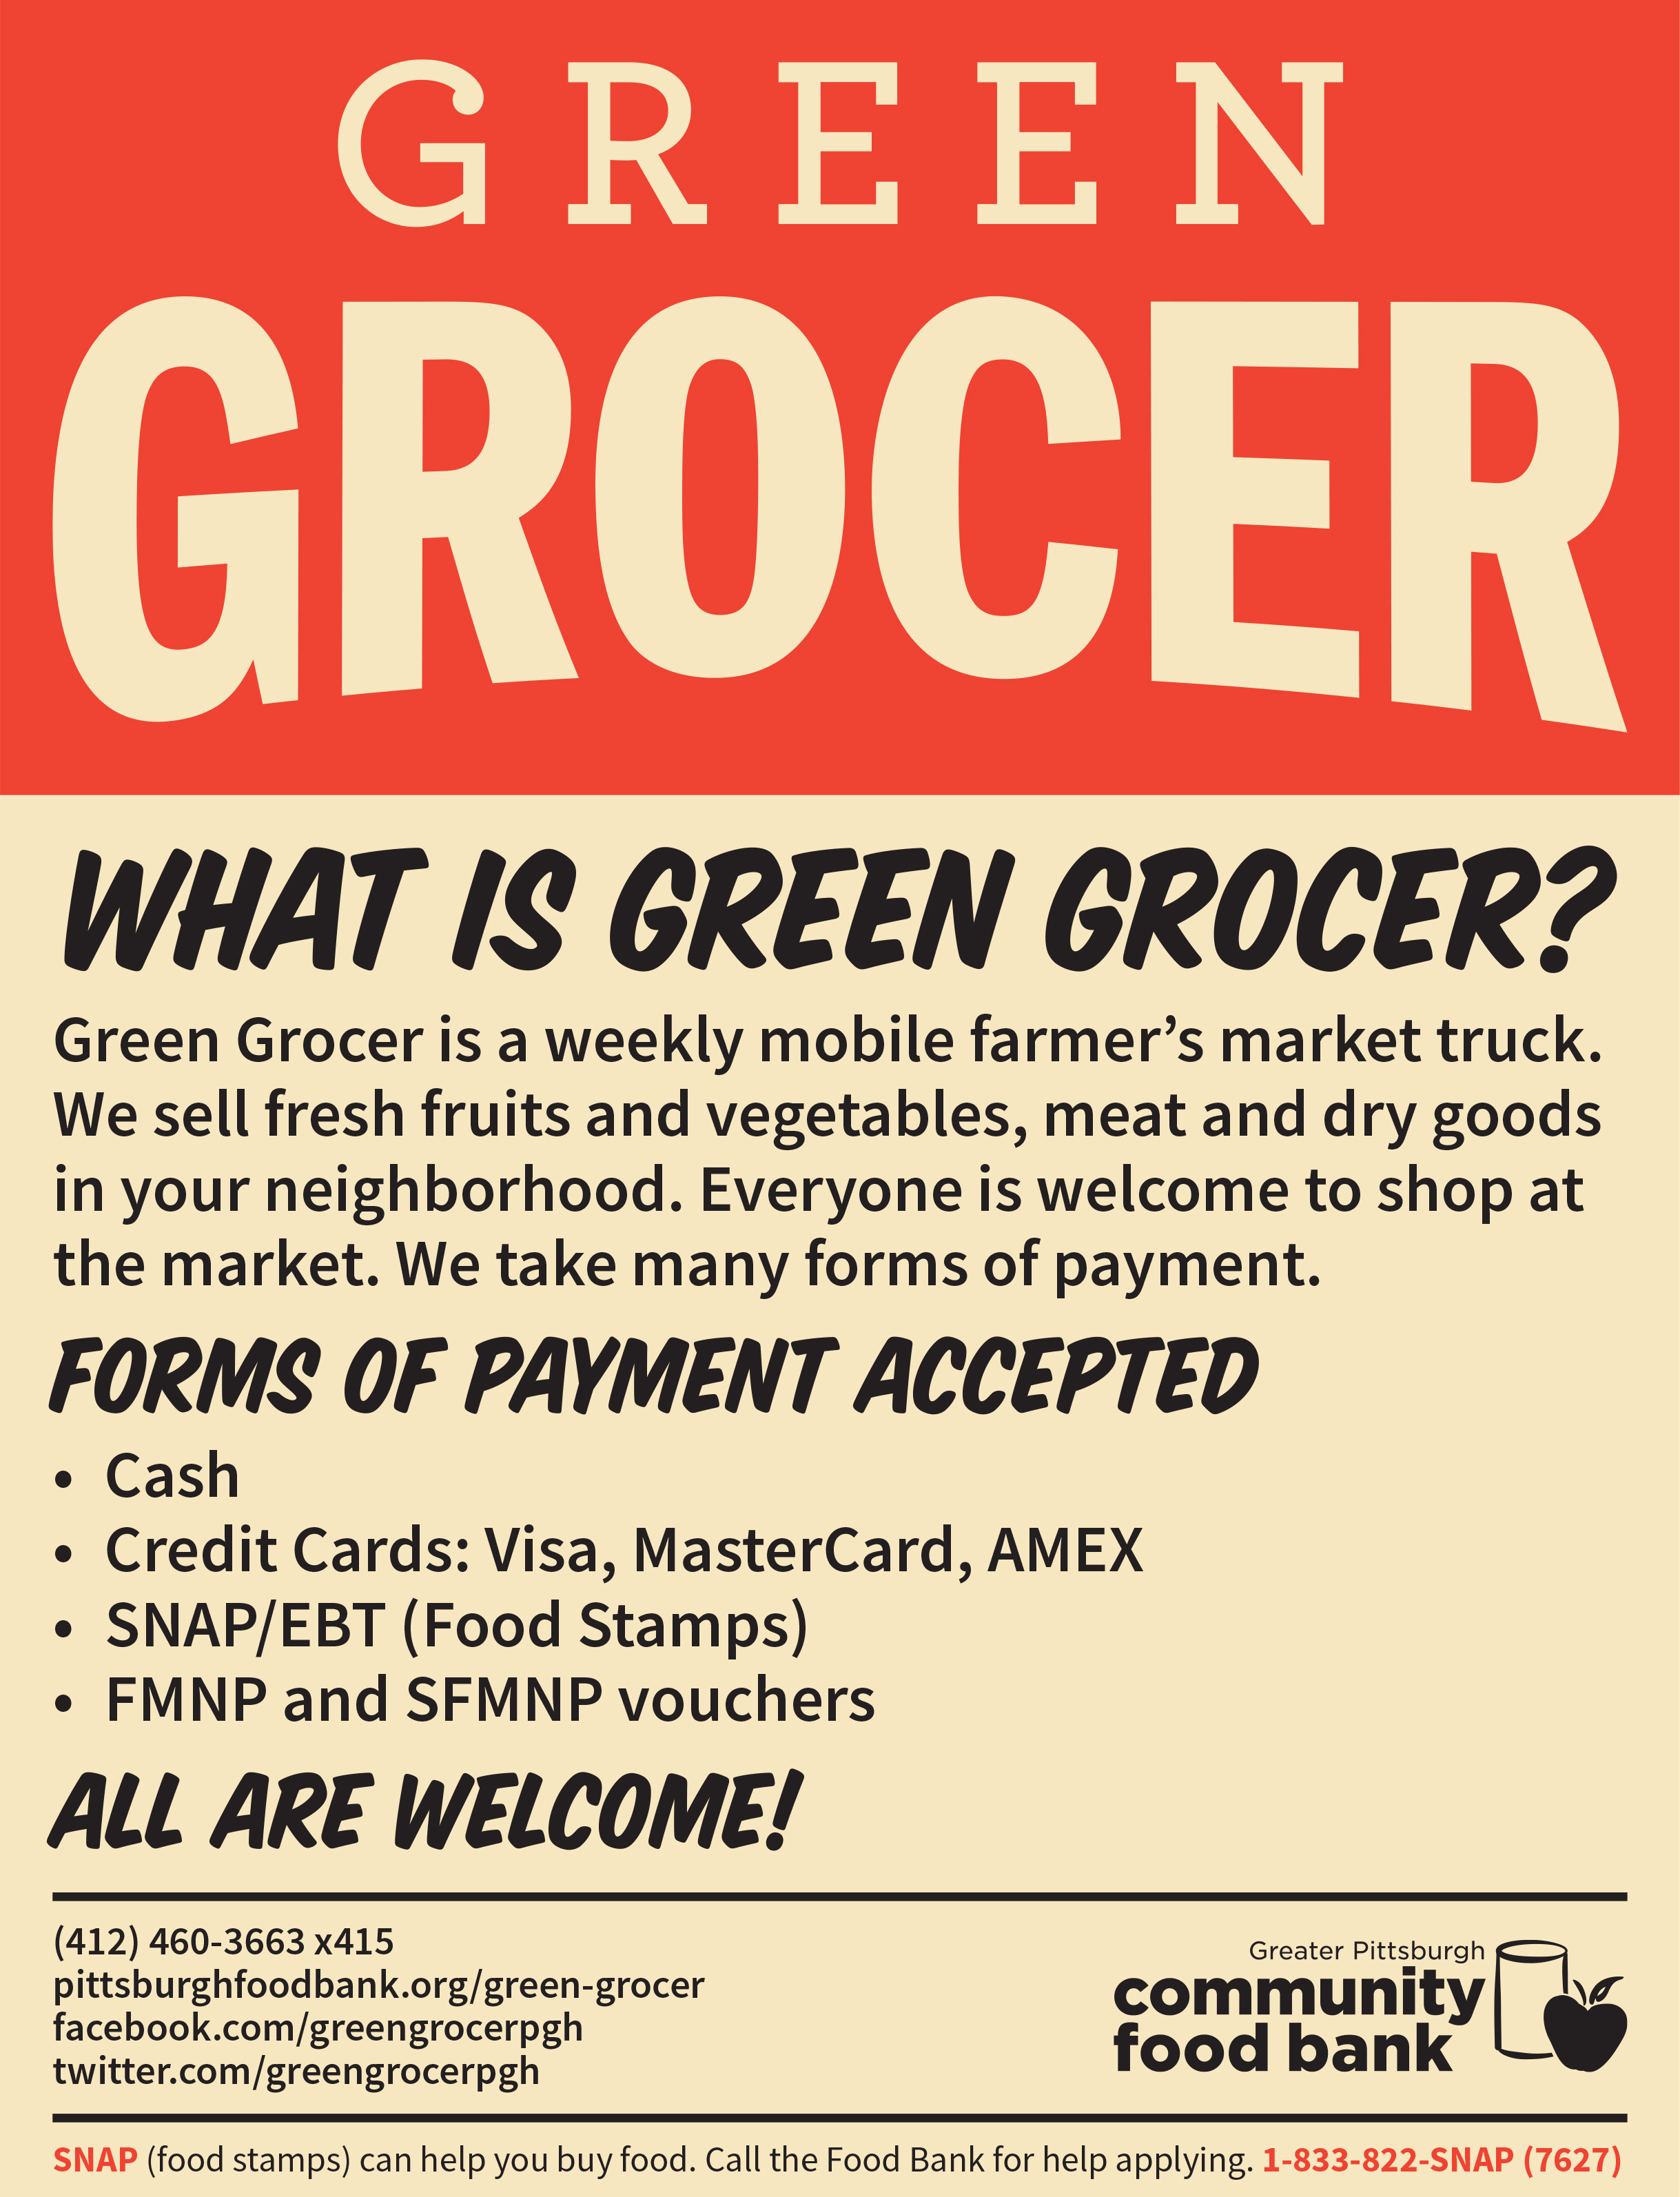 Check out the Green Grocer's schedule    here   !